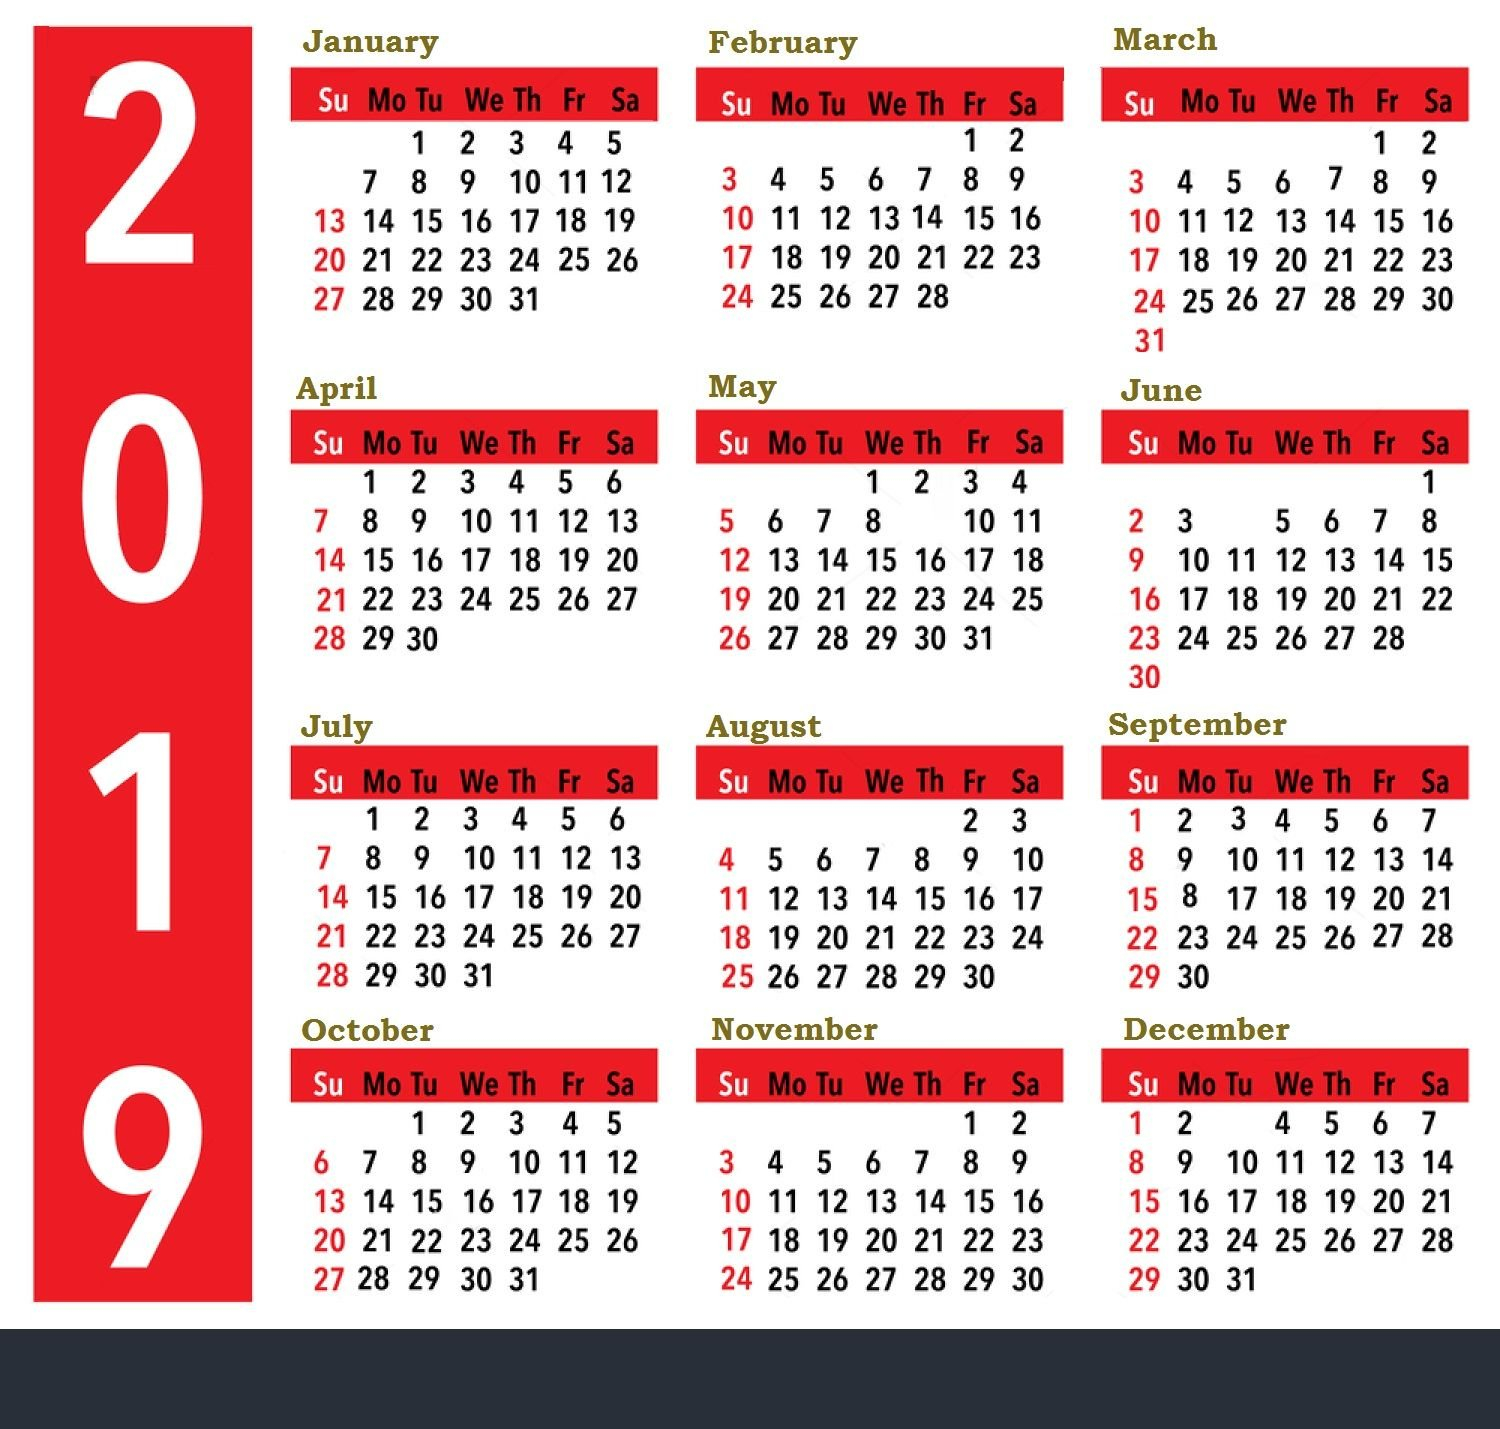 2019 Calendar For United States Holidays All Important Dates And Calendar 2019 United States